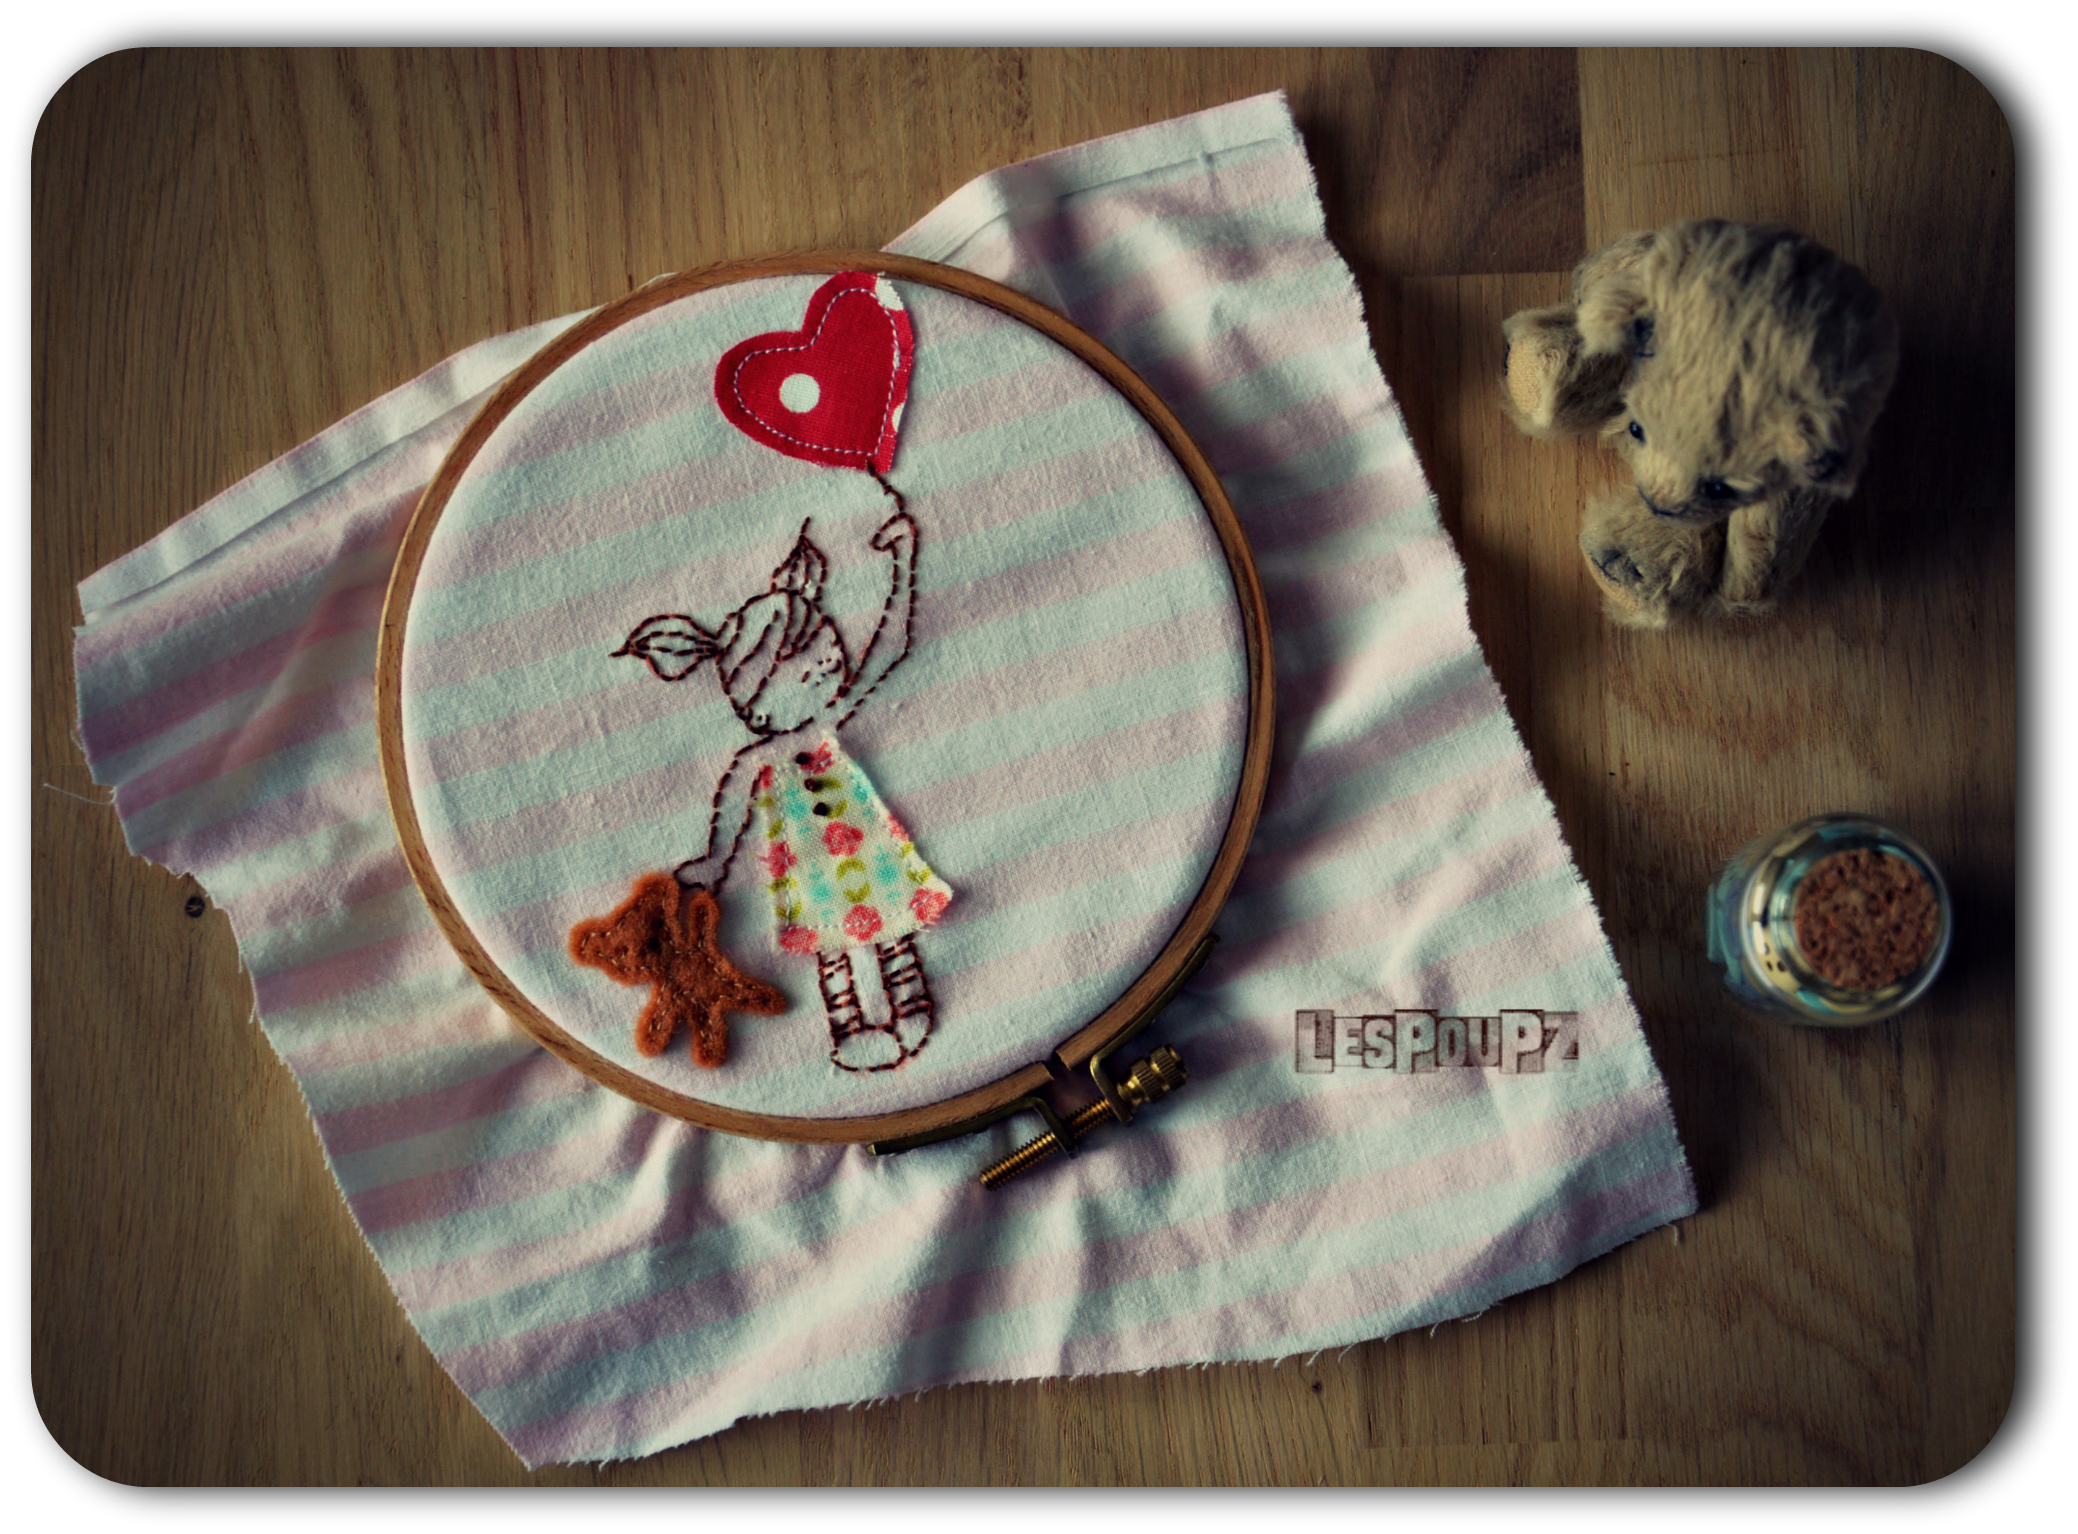 I love embroidery and pretty tiny details